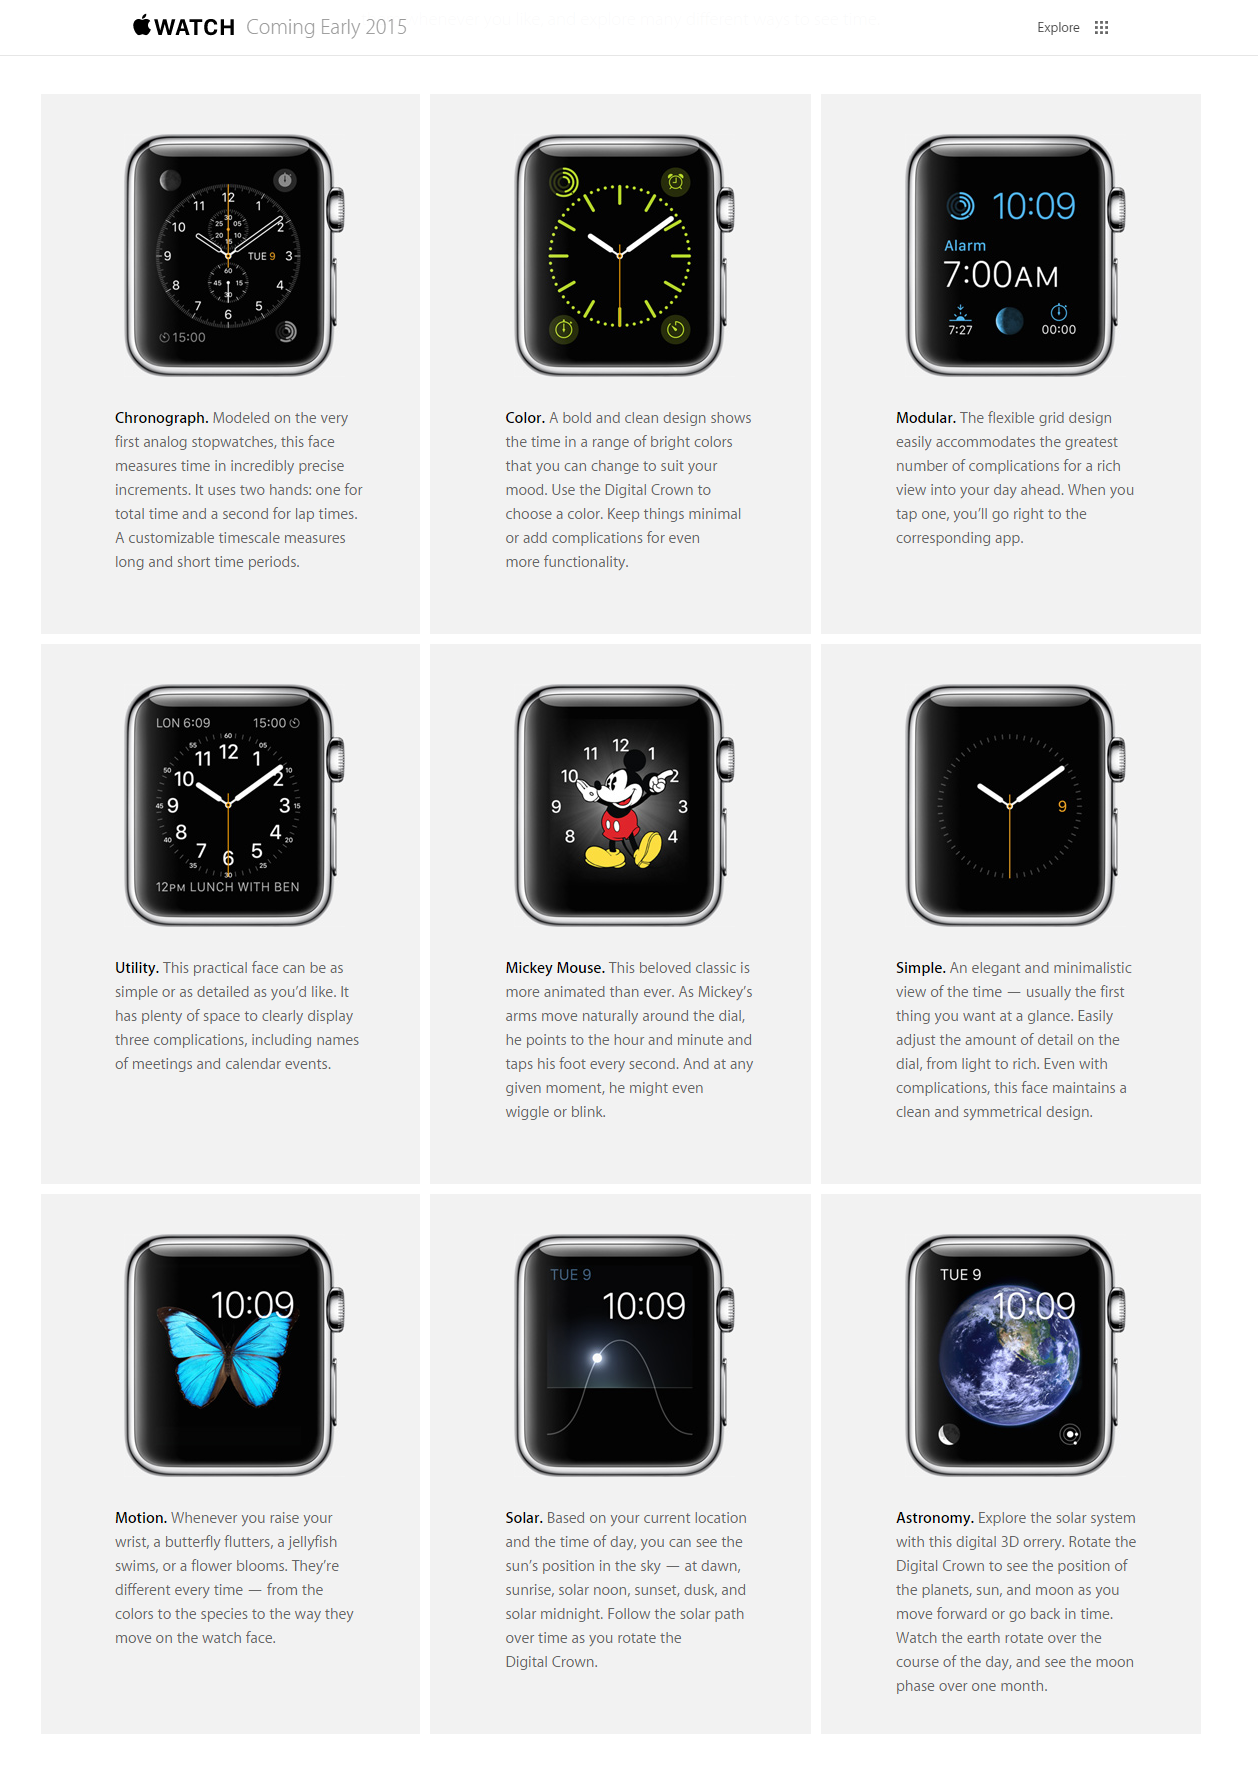 apple-watch-more-functions_03